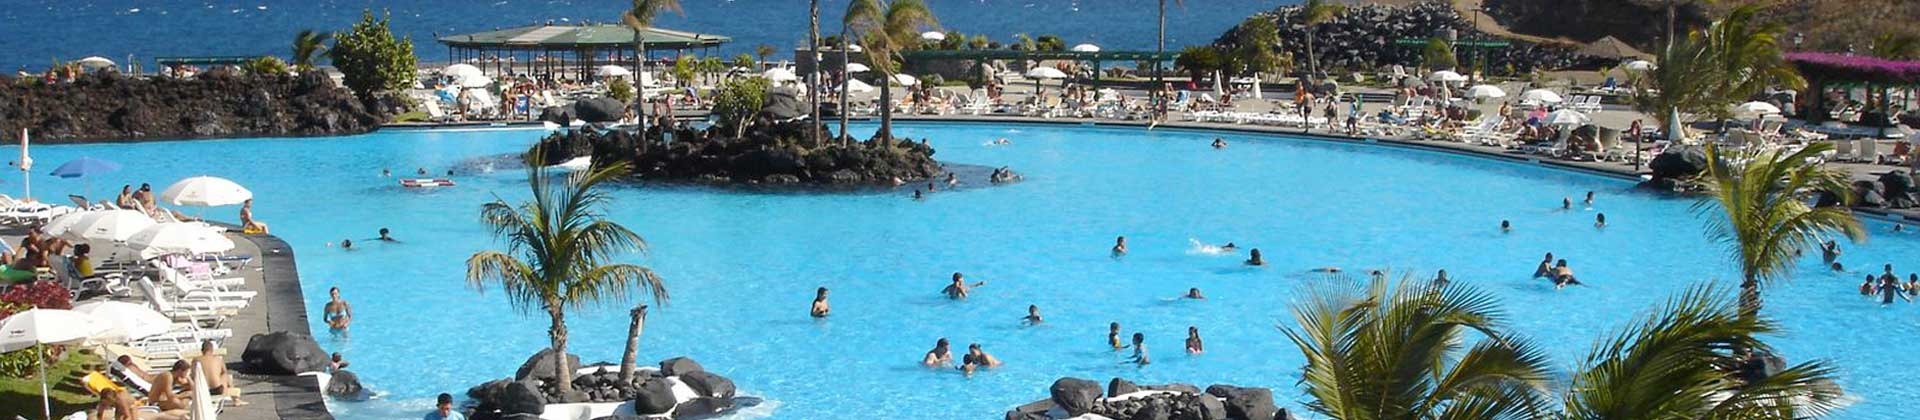 https://www.goodmorningtenerife.com/wp-content/uploads/2014/08/03_slide_parks_GM_Tenerife.jpg